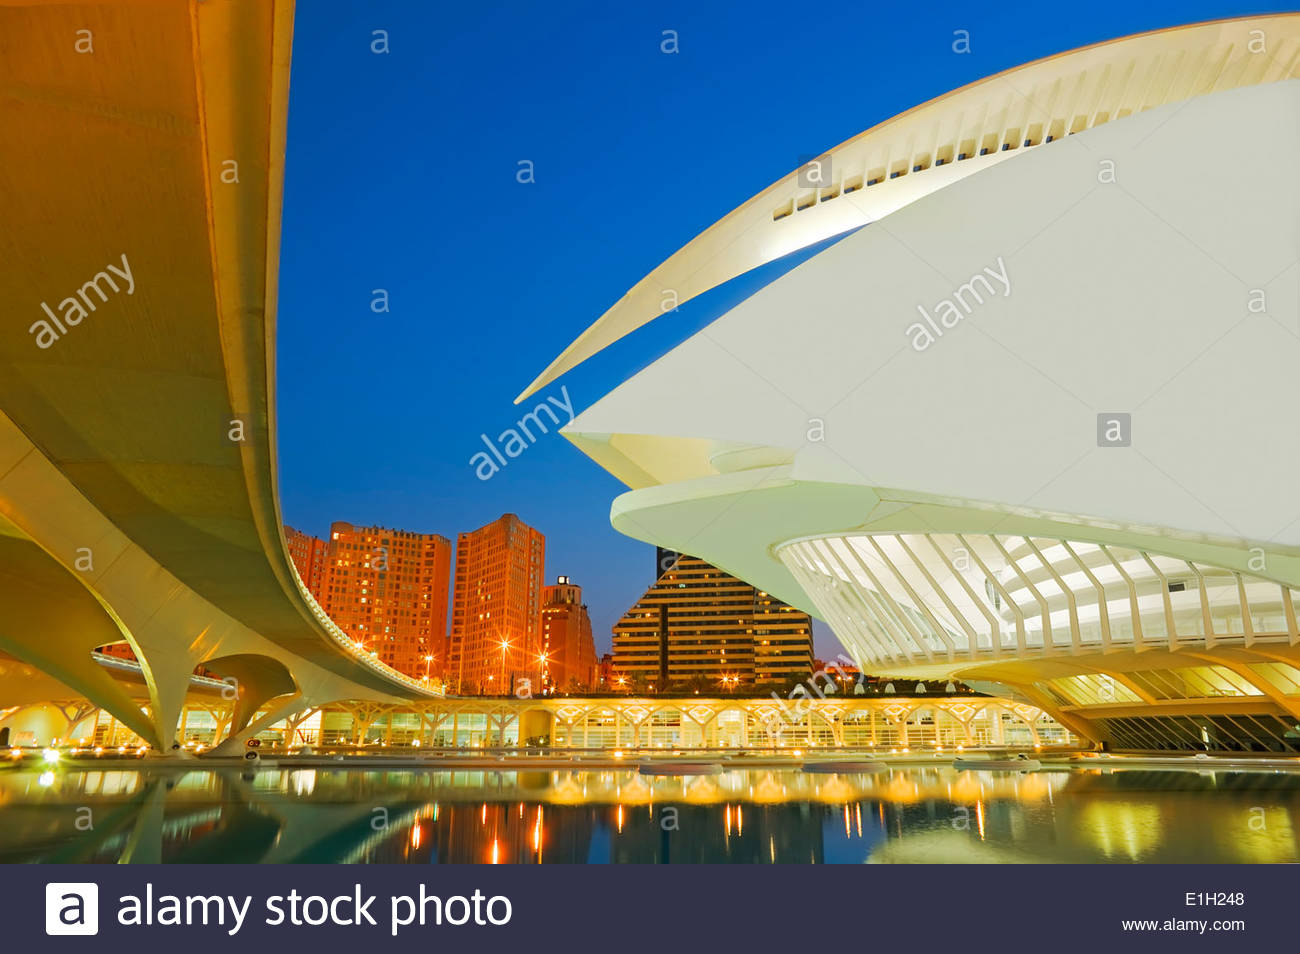 City of Arts and Sciences at night, Valencia, Spain - Stock Image